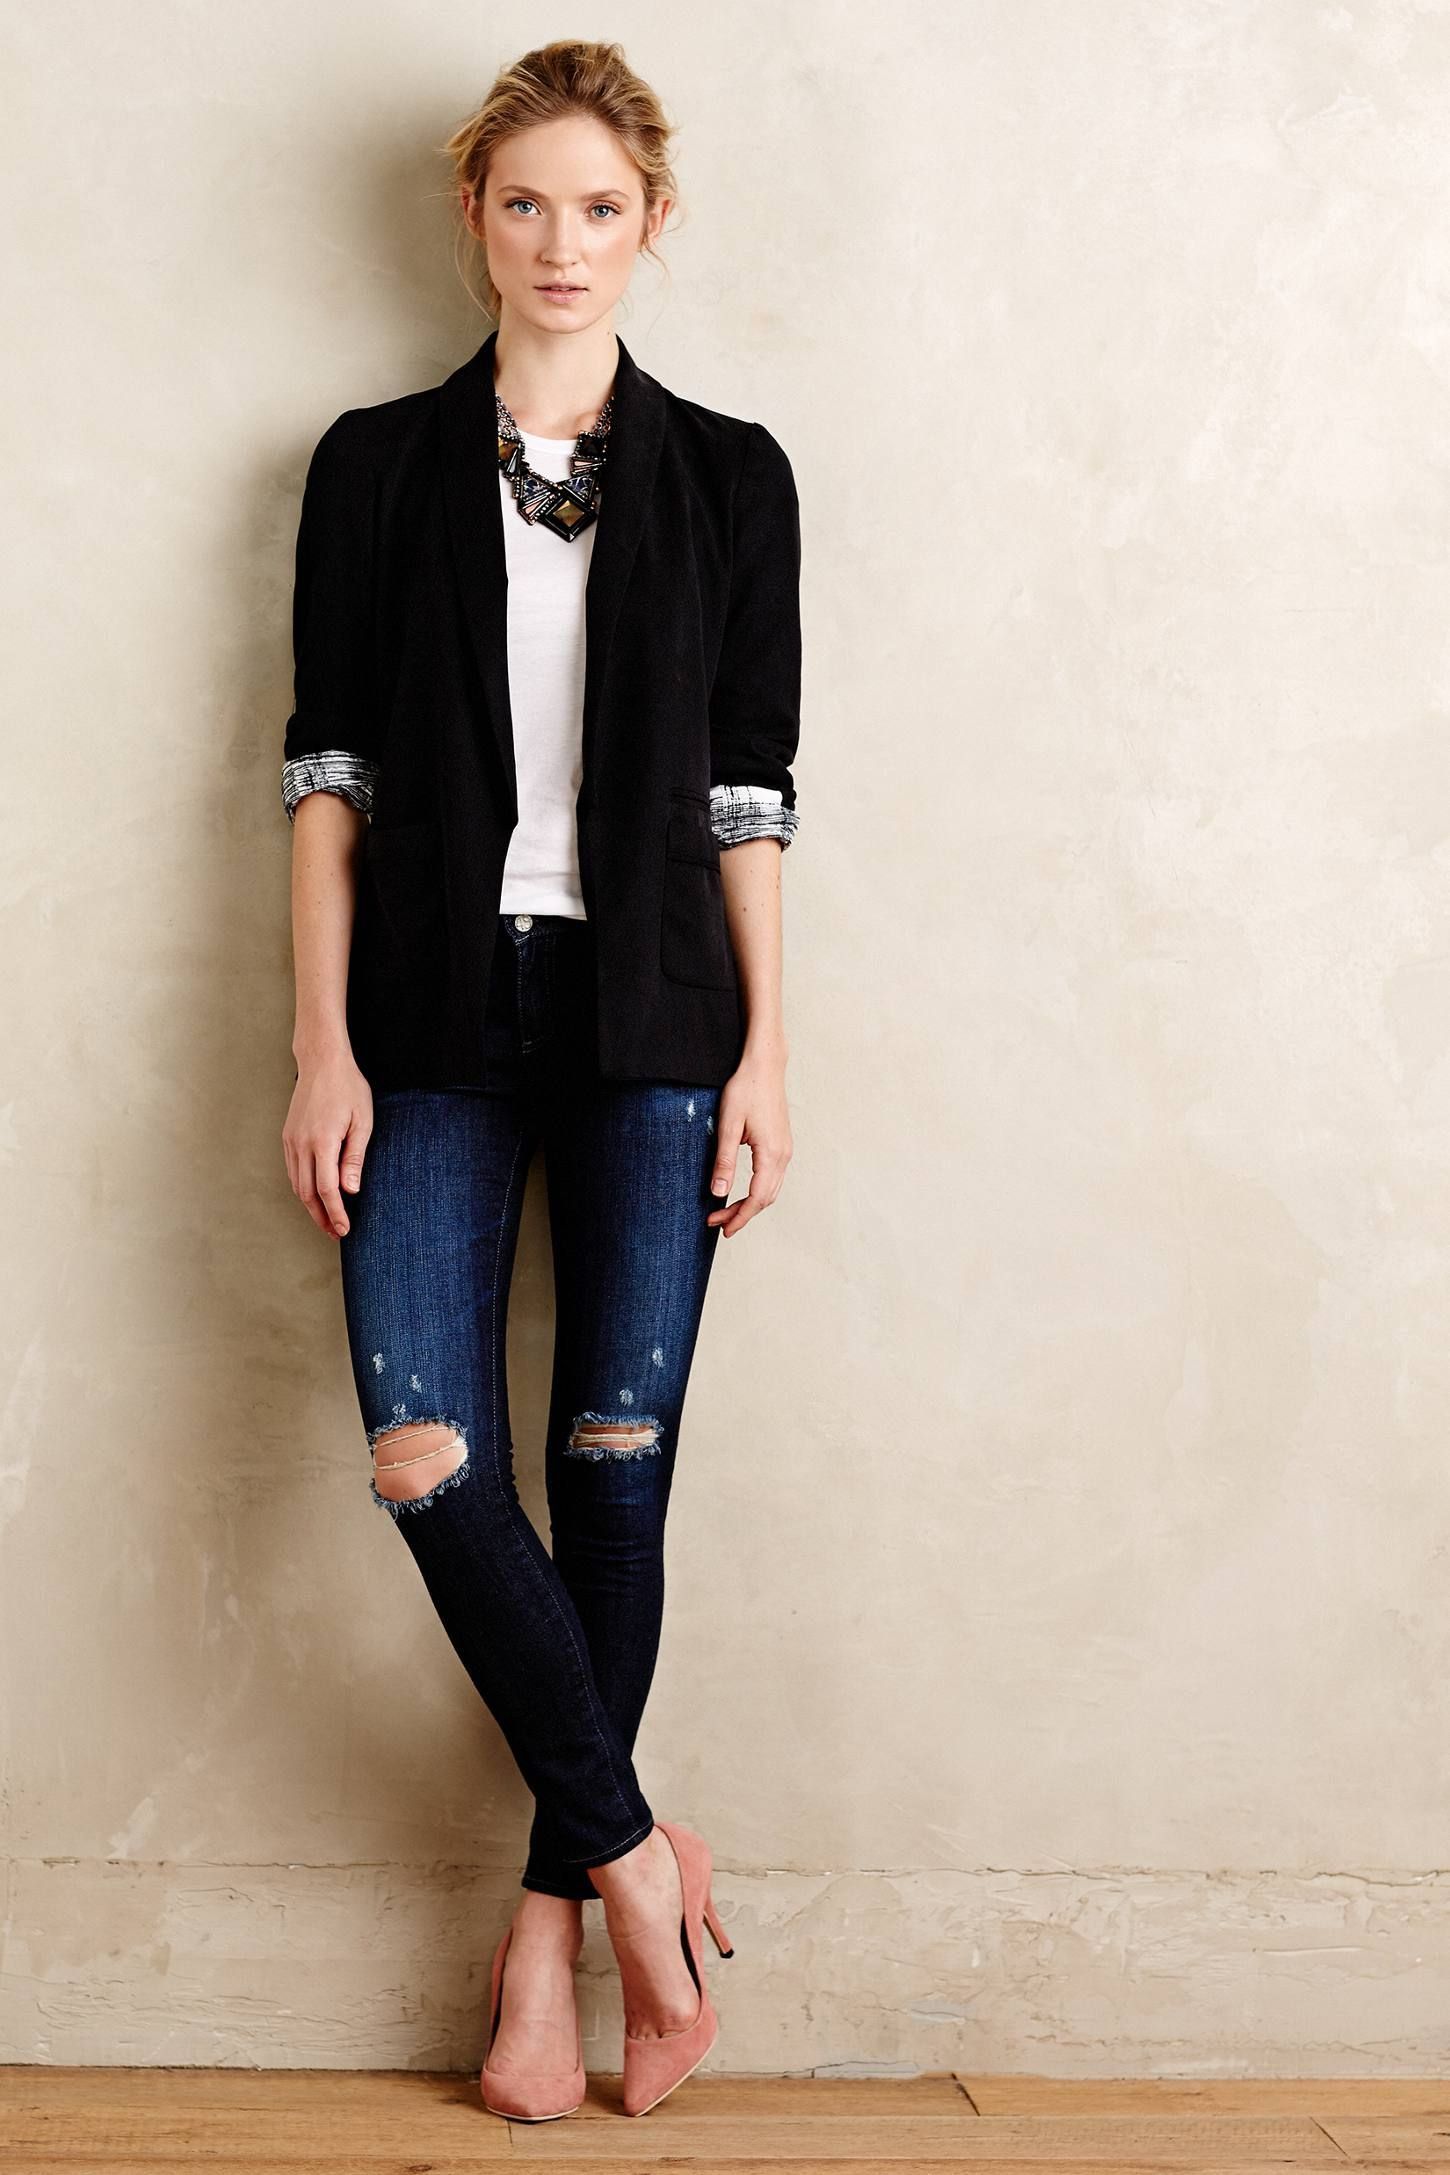 Bexhill Blazer - anthropologie.com | Clothing | Pinterest ...